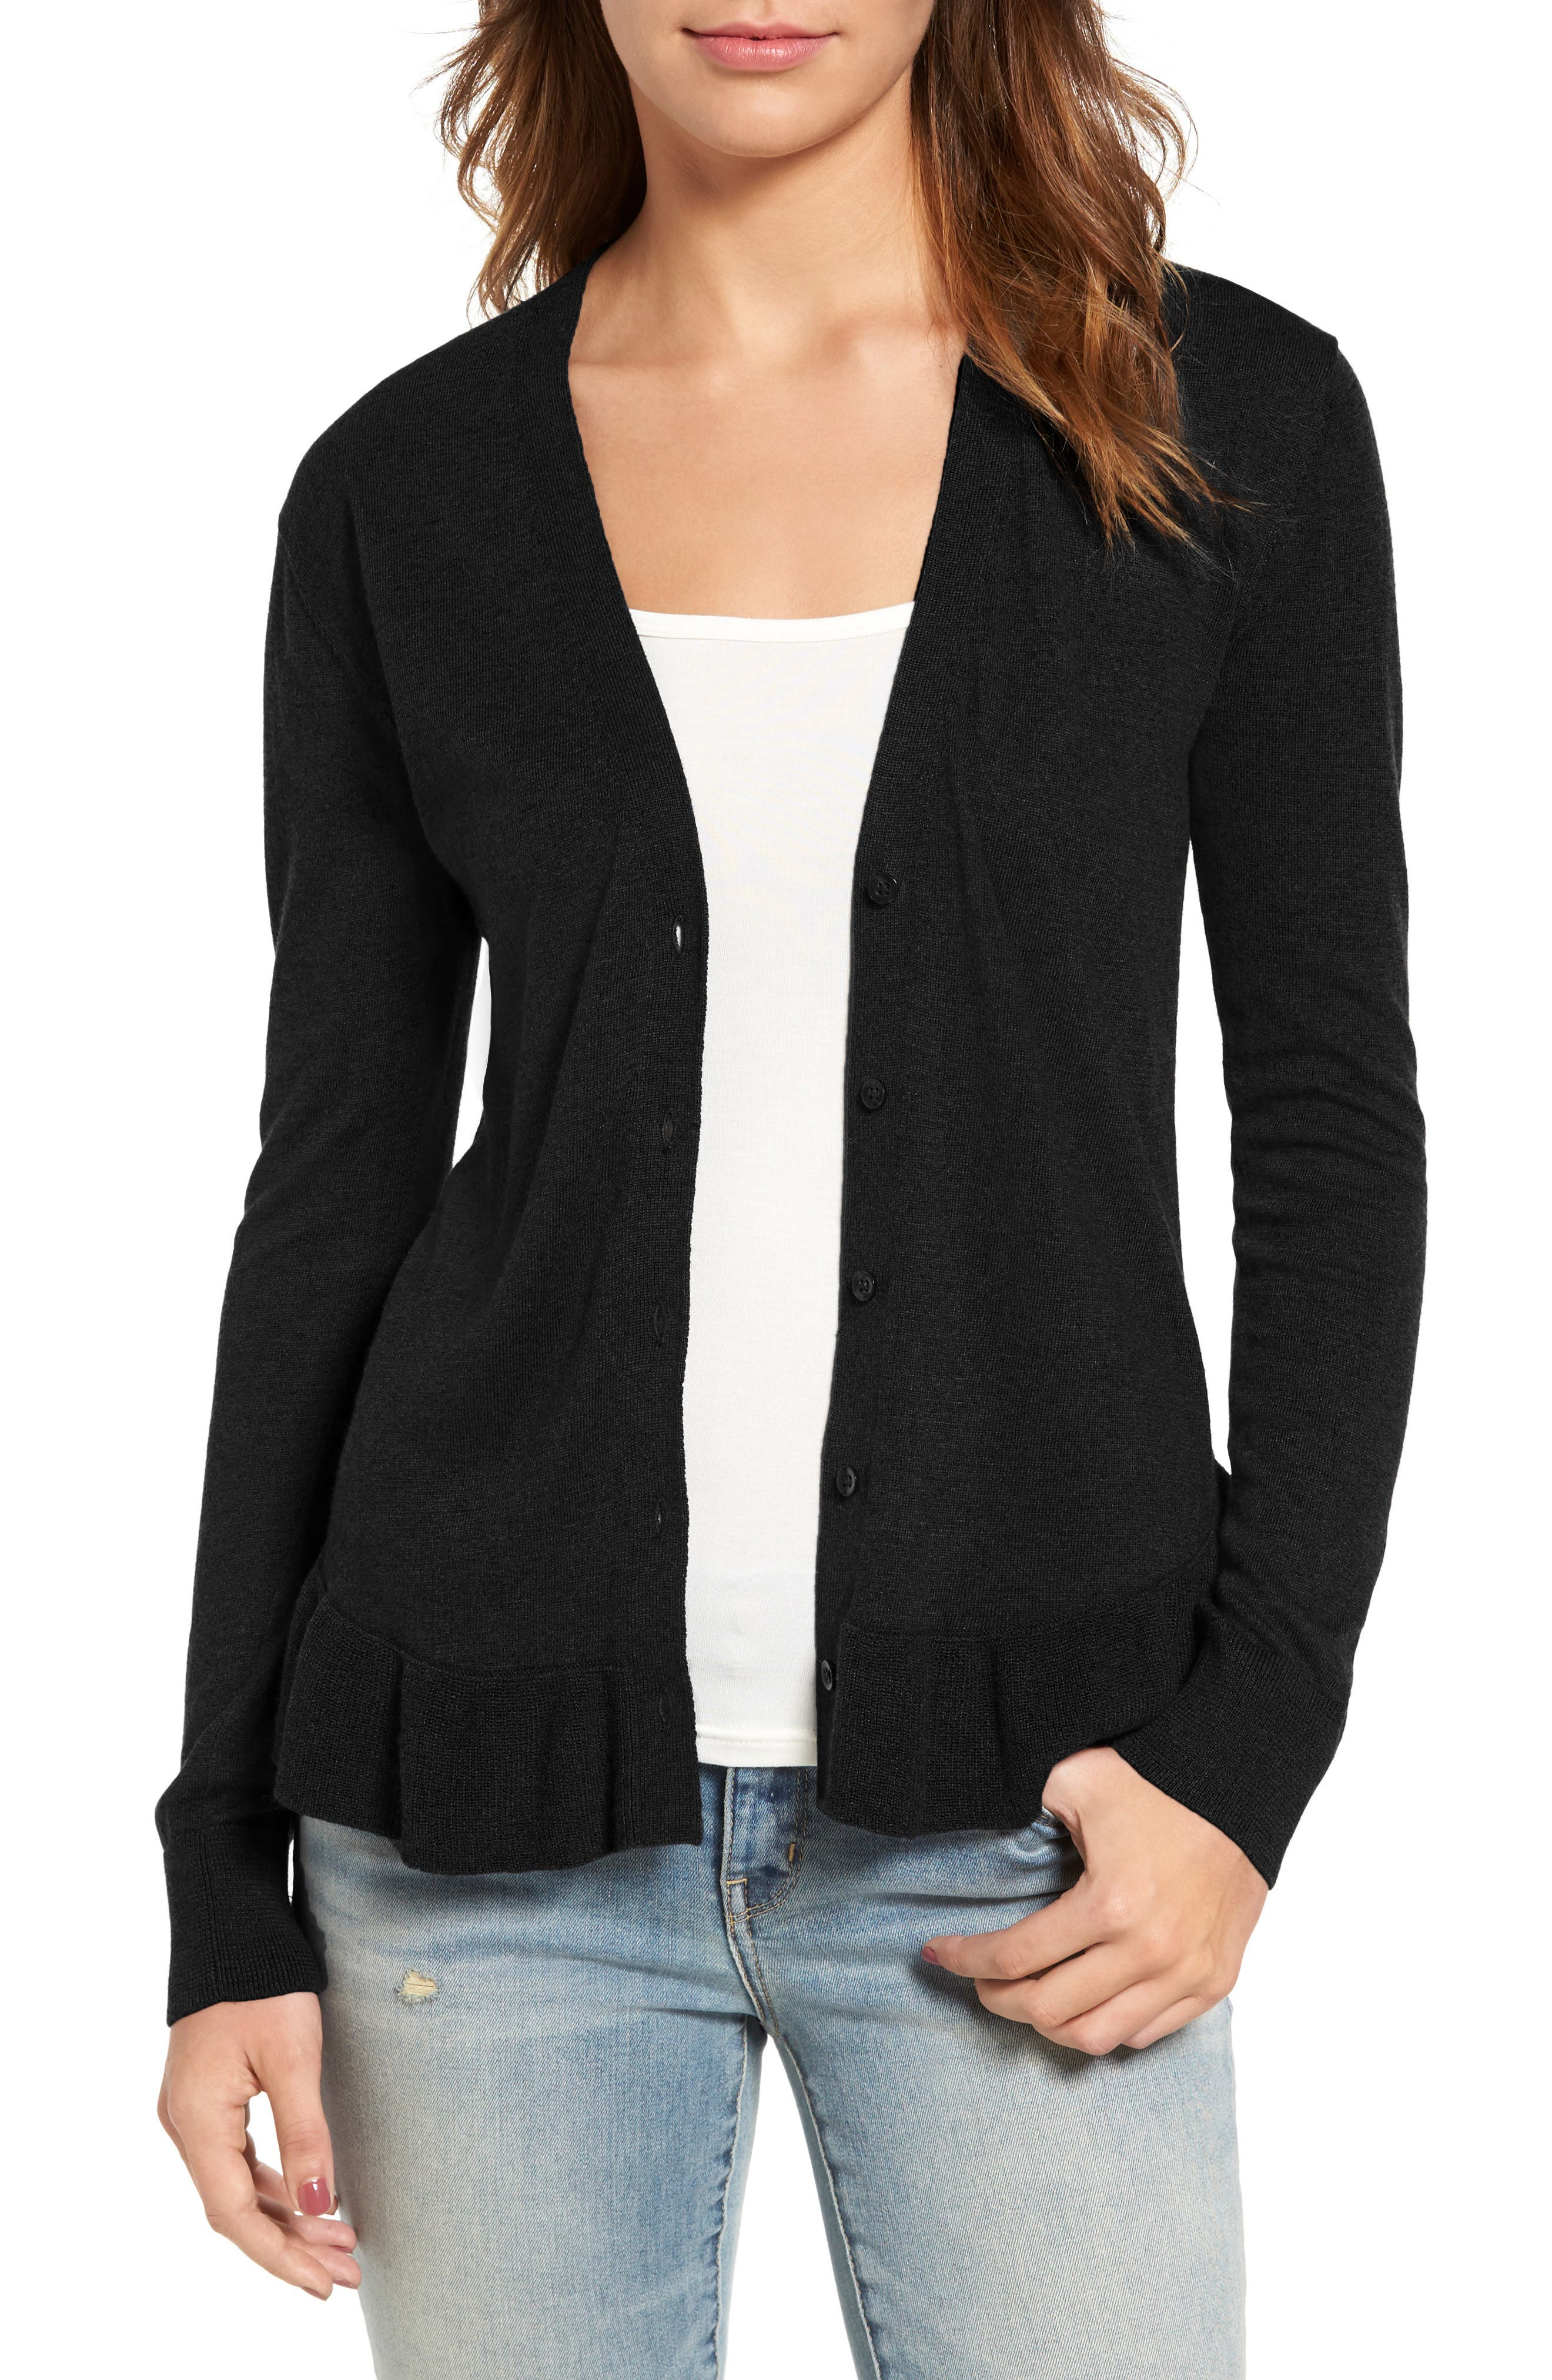 Alternate Image 1 Selected - Hinge Ruffle Hem Cardigan